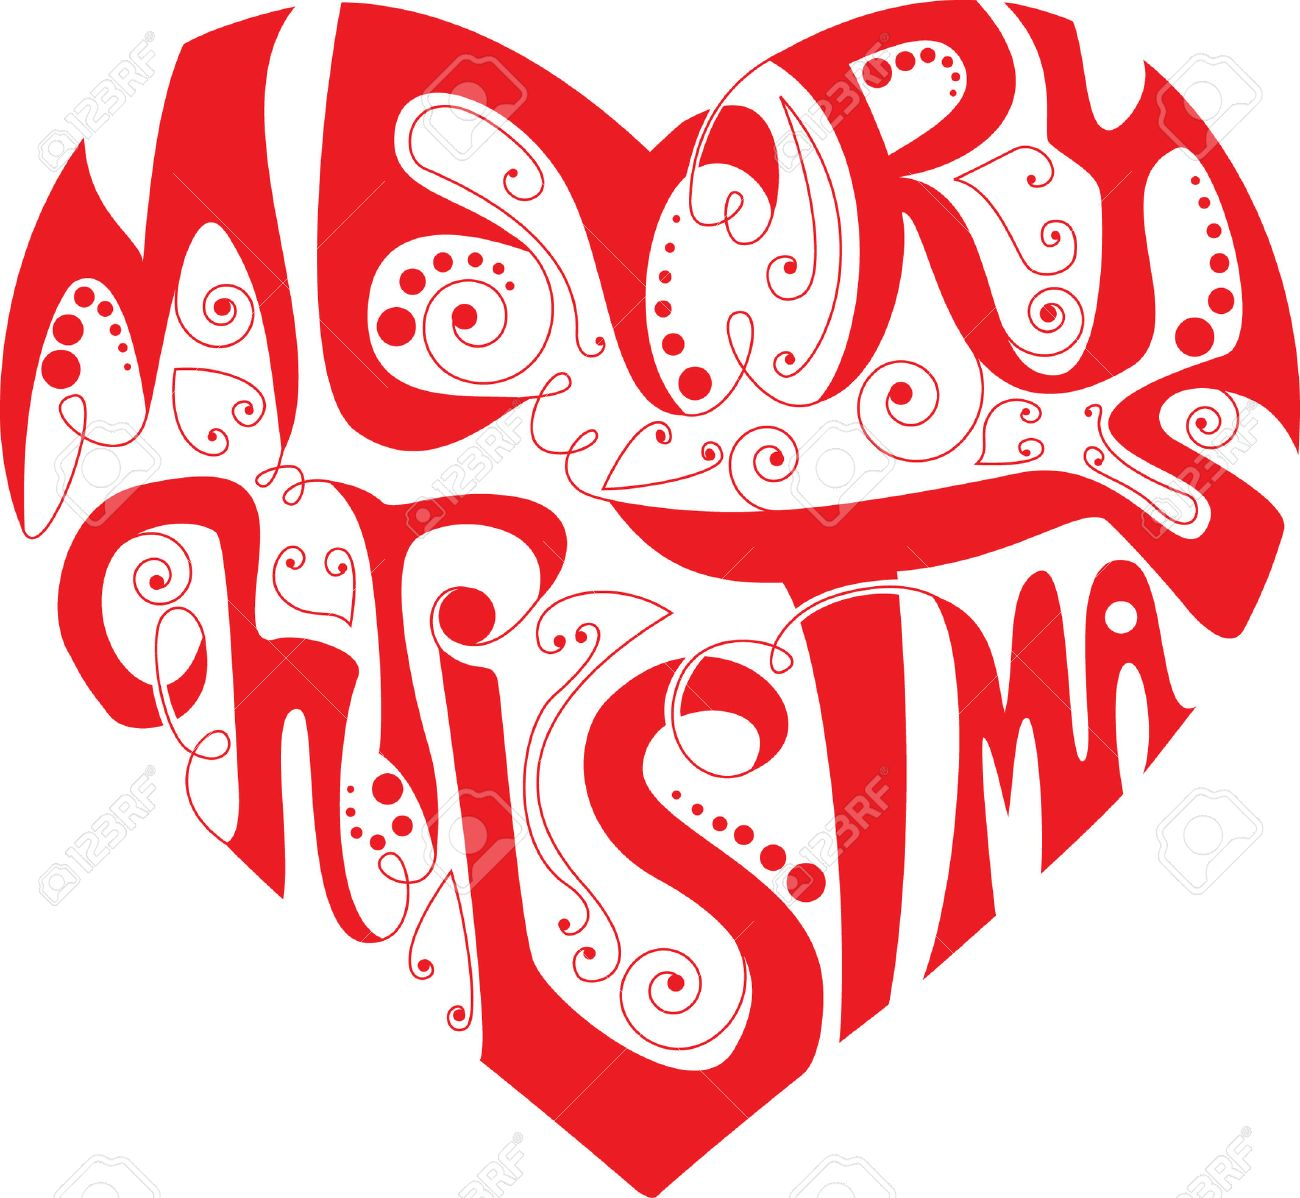 Christmas Heart.Merry Christmas Heart